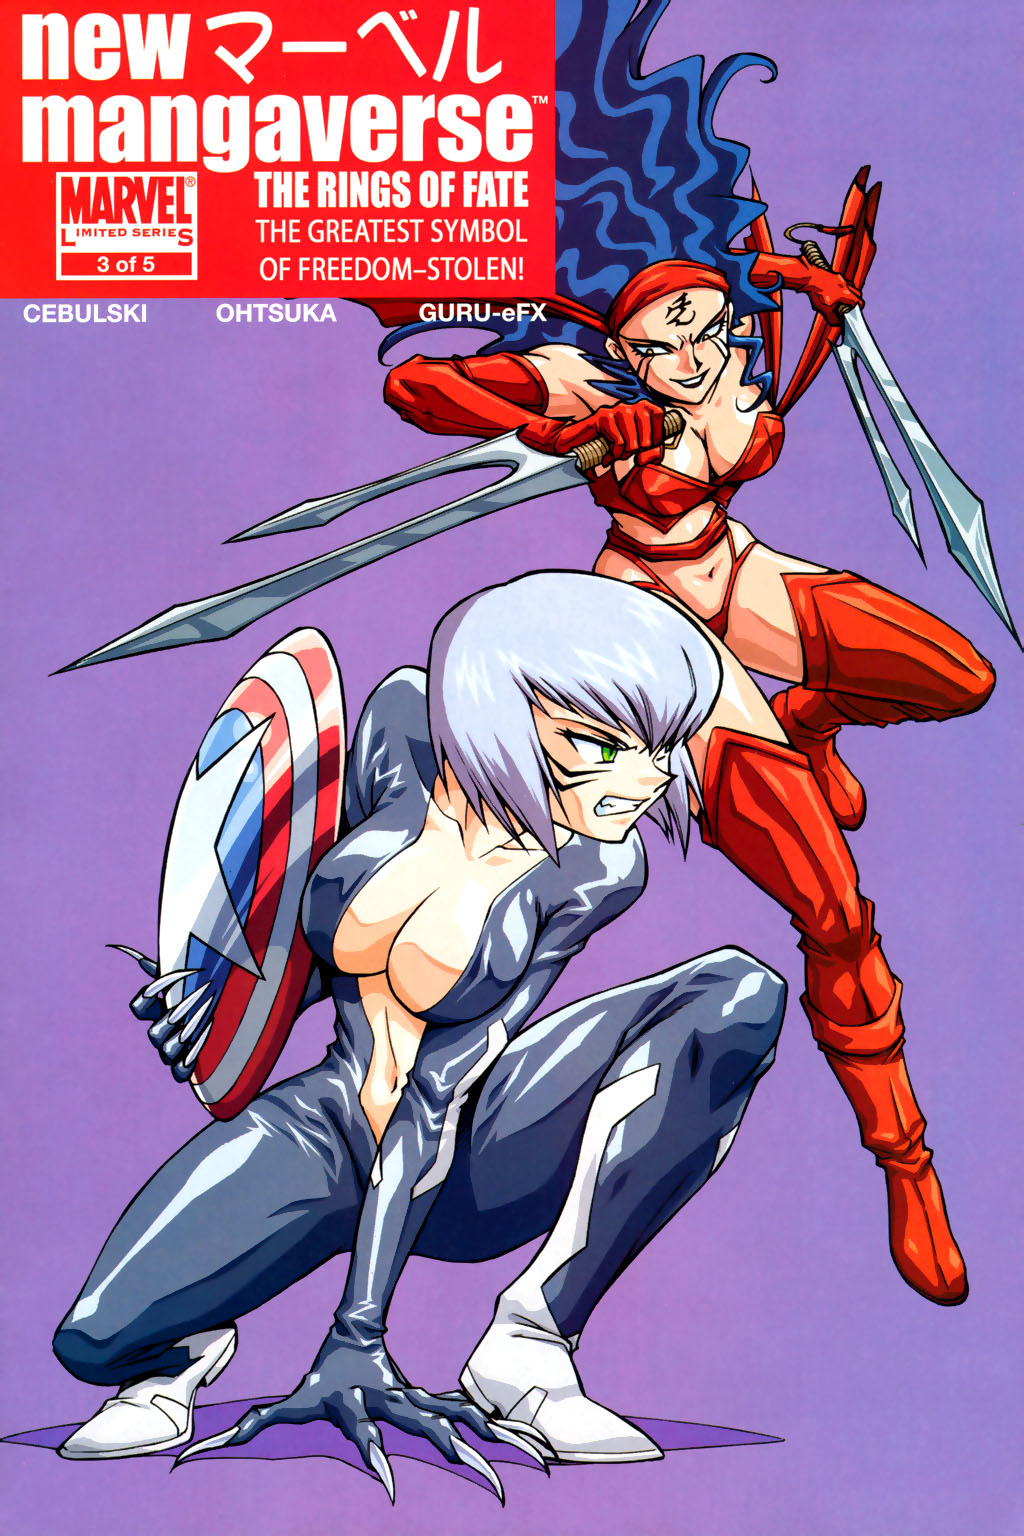 New Mangaverse: The Rings of Fate Vol 1 3